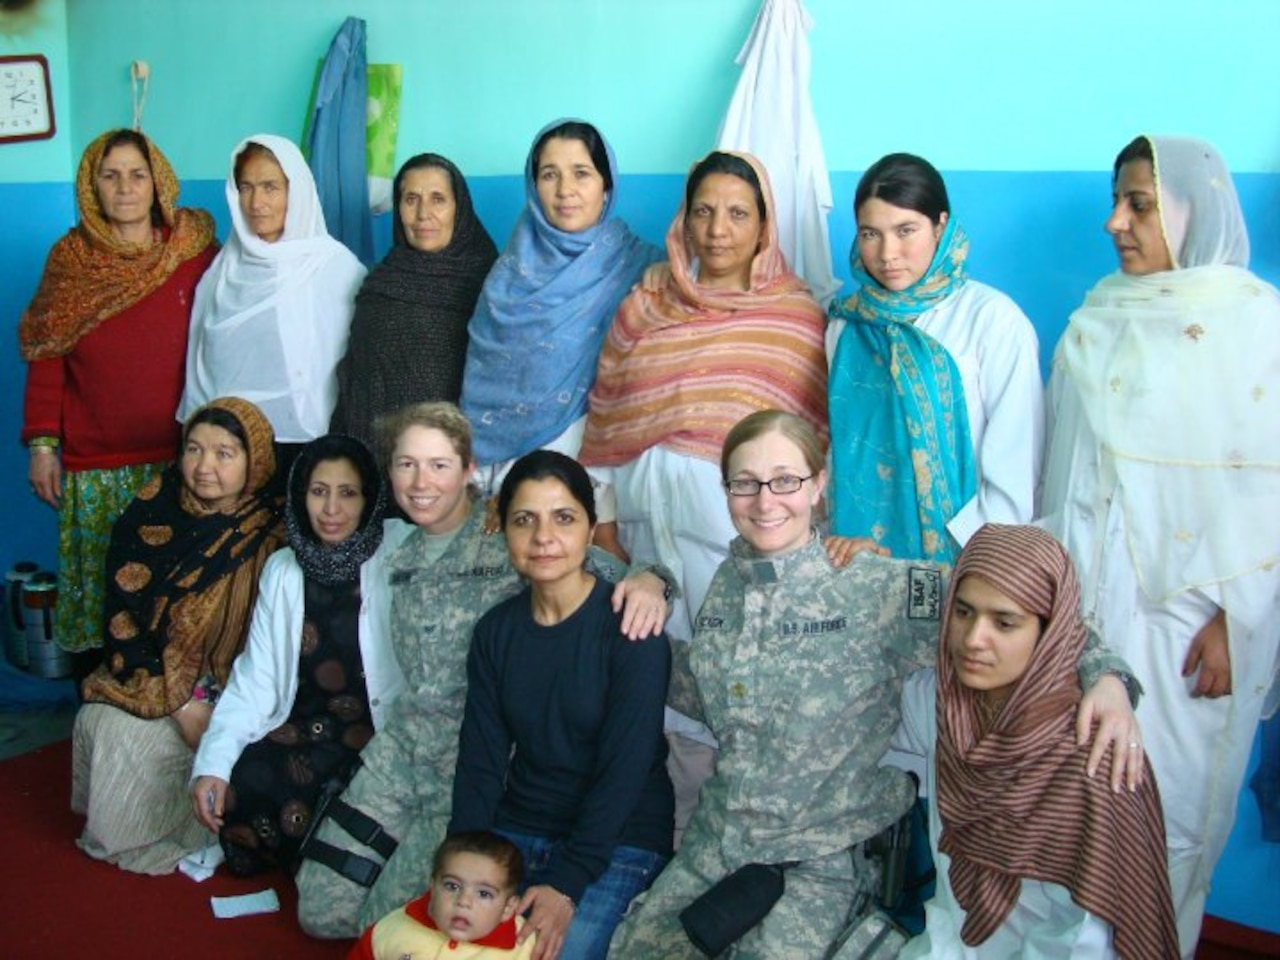 Air Force doctor poses with Afghan women.